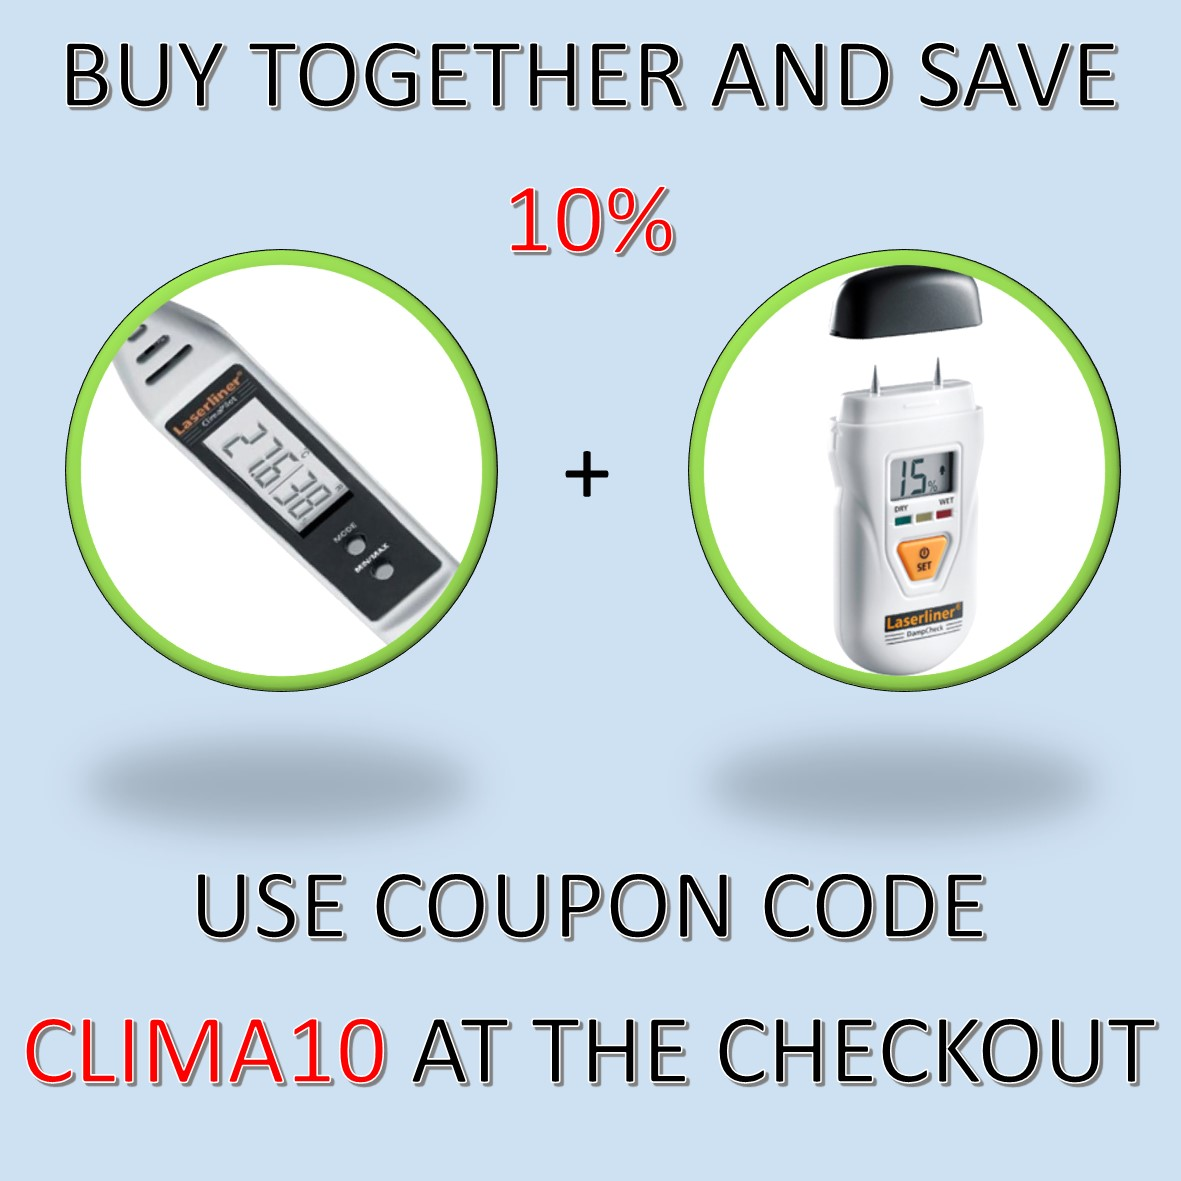 Coupon Codes | Latest Deals | Alliance Remedial Supplies